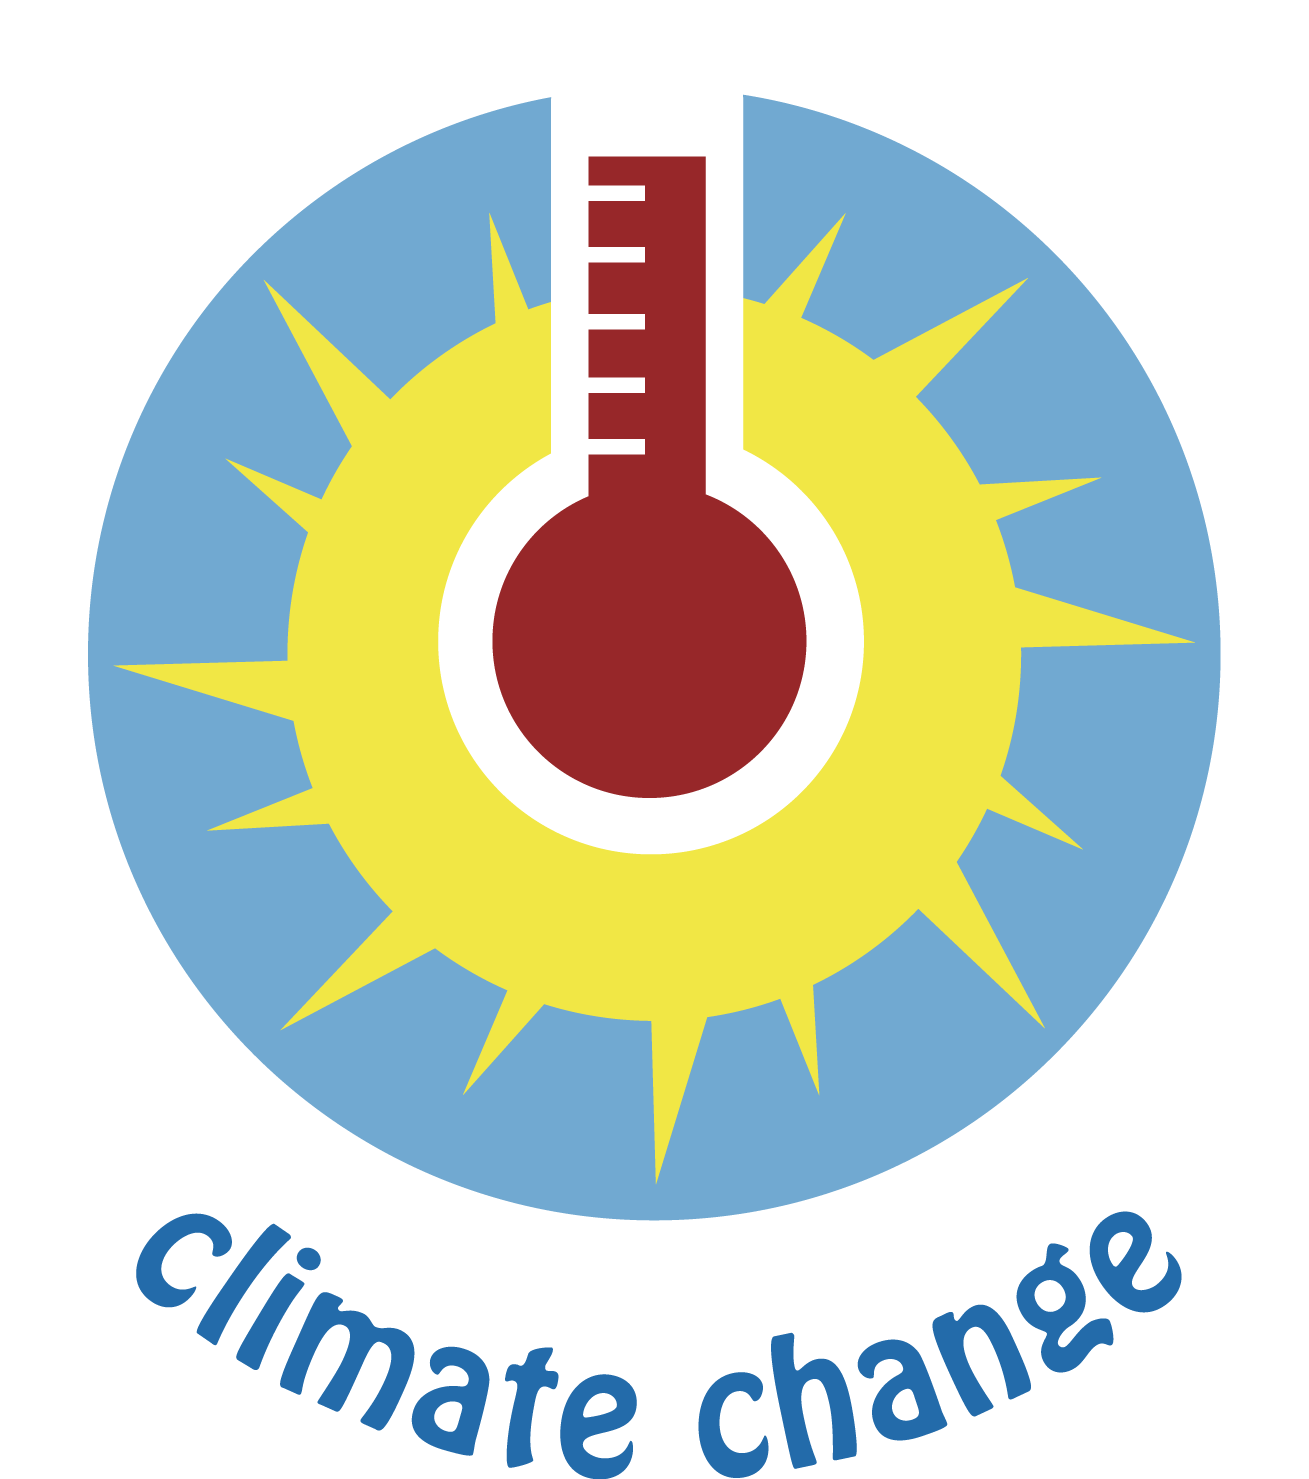 Hot clipart temperature increase. Climate change png transparent